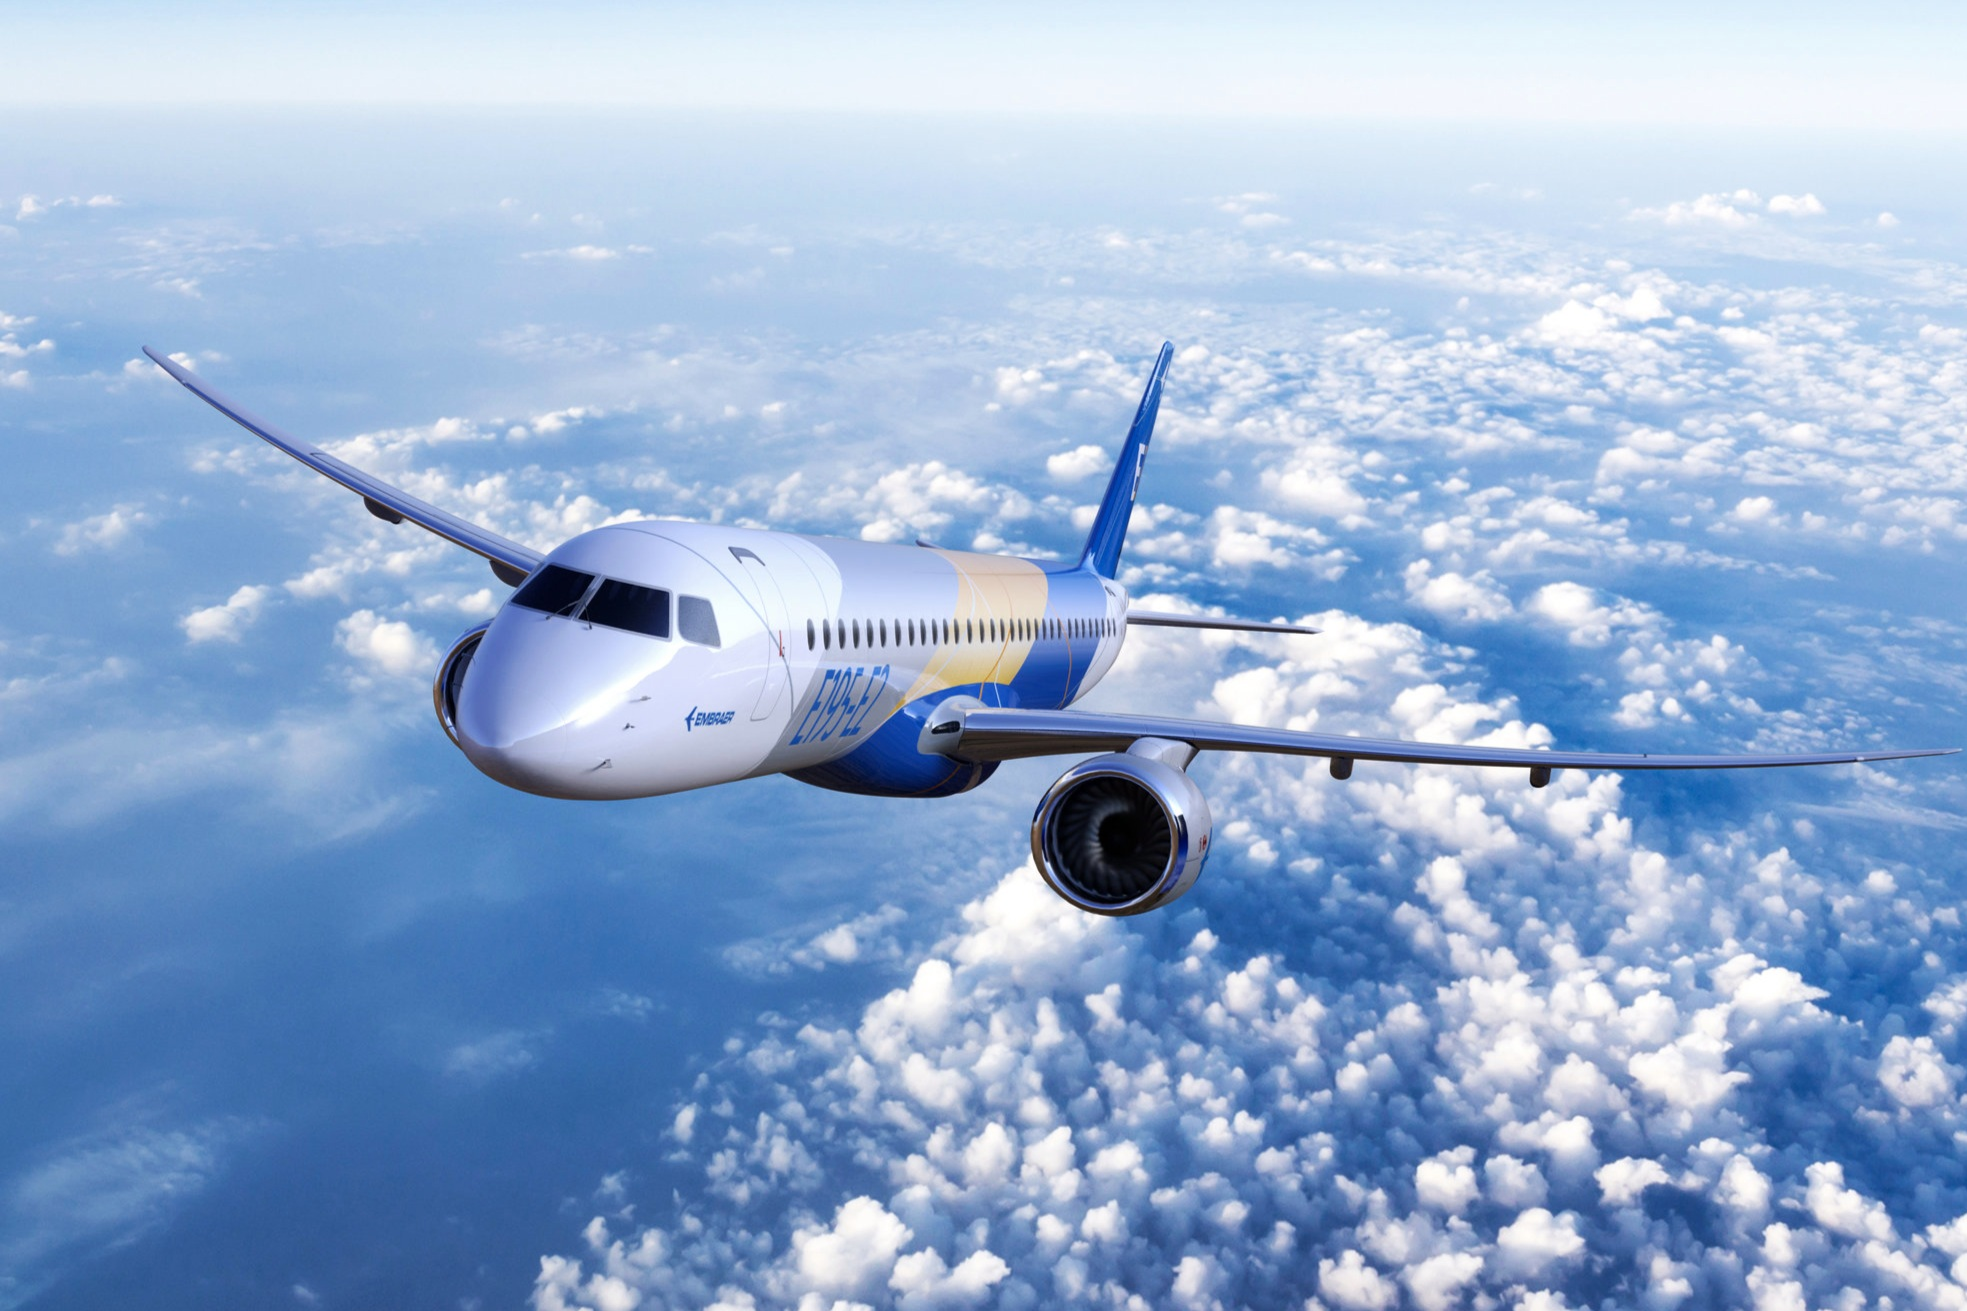 COMMERCIAL AIRCRAFT - We can cater for any size group from 20-500 passengers, including ad-hoc charters or more extensive long-term charter contracts.